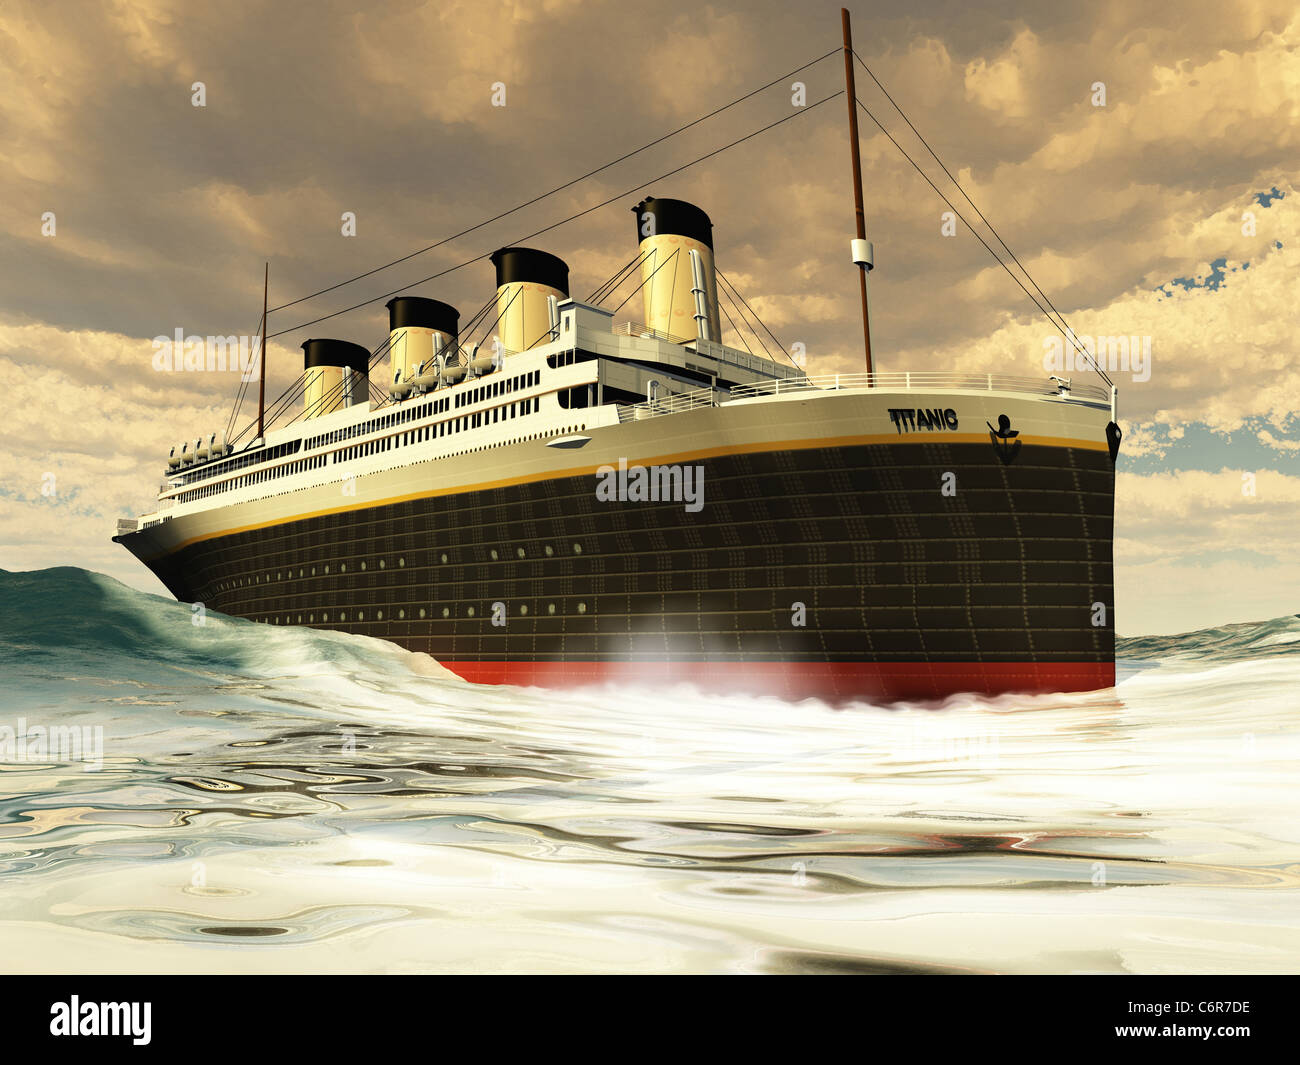 The grand and elegant Titanic glides through the ocean with ease. - Stock Image